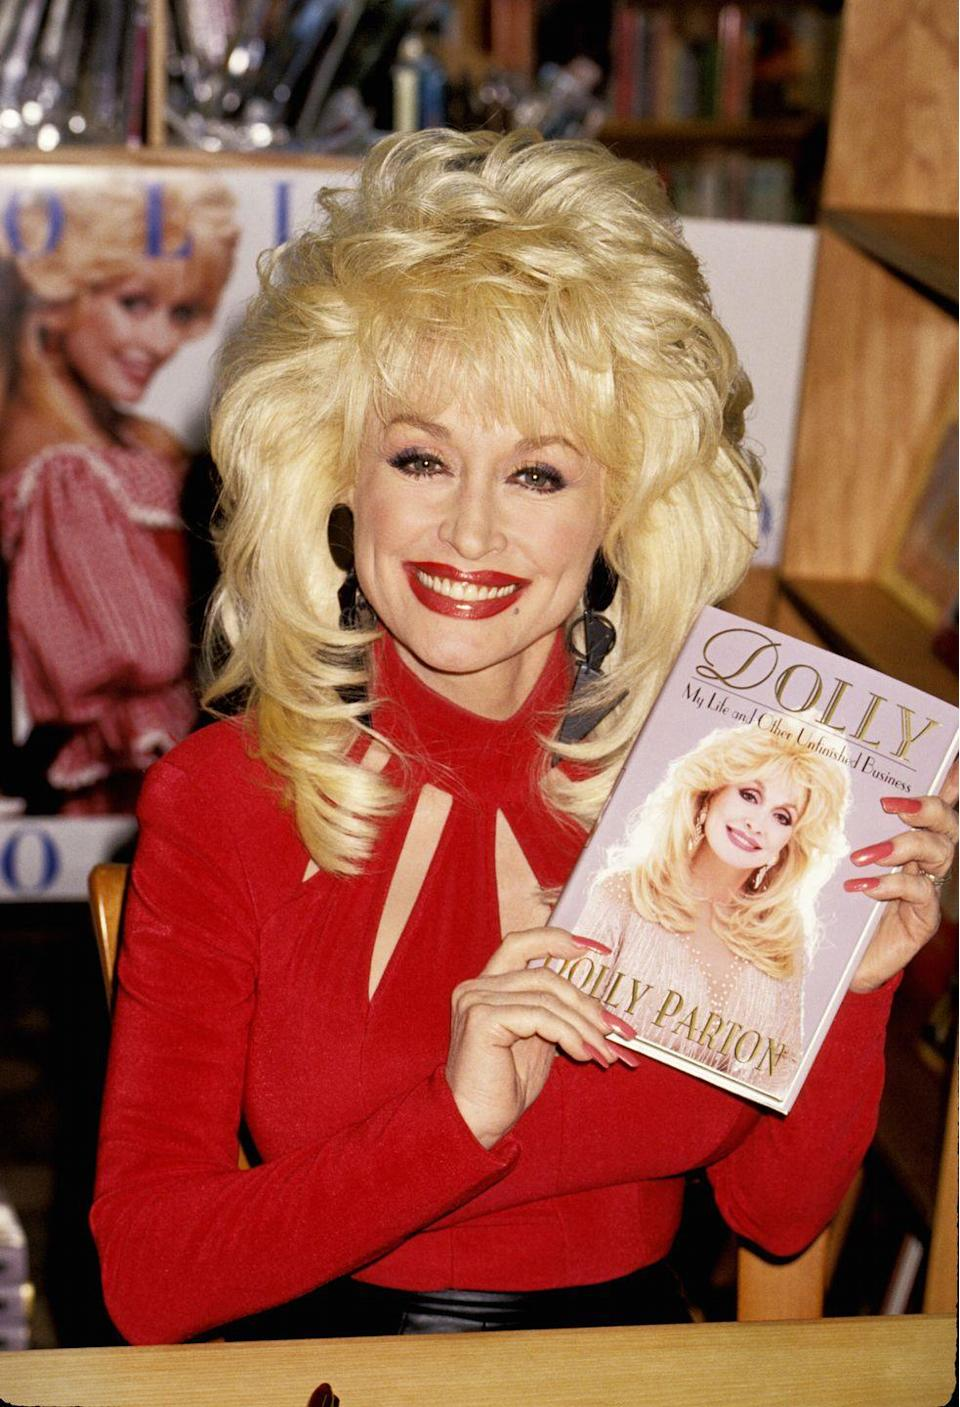 """<p>Dolly signings her memoir <em><a href=""""https://www.amazon.com/Dolly-Life-Other-Unfinished-Business/dp/0061092363?tag=syn-yahoo-20&ascsubtag=%5Bartid%7C1782.g.35034126%5Bsrc%7Cyahoo-us"""" rel=""""nofollow noopener"""" target=""""_blank"""" data-ylk=""""slk:Dolly: My Life and Other Unfinished Business"""" class=""""link rapid-noclick-resp"""">Dolly: My Life and Other Unfinished Business</a>.</em></p>"""